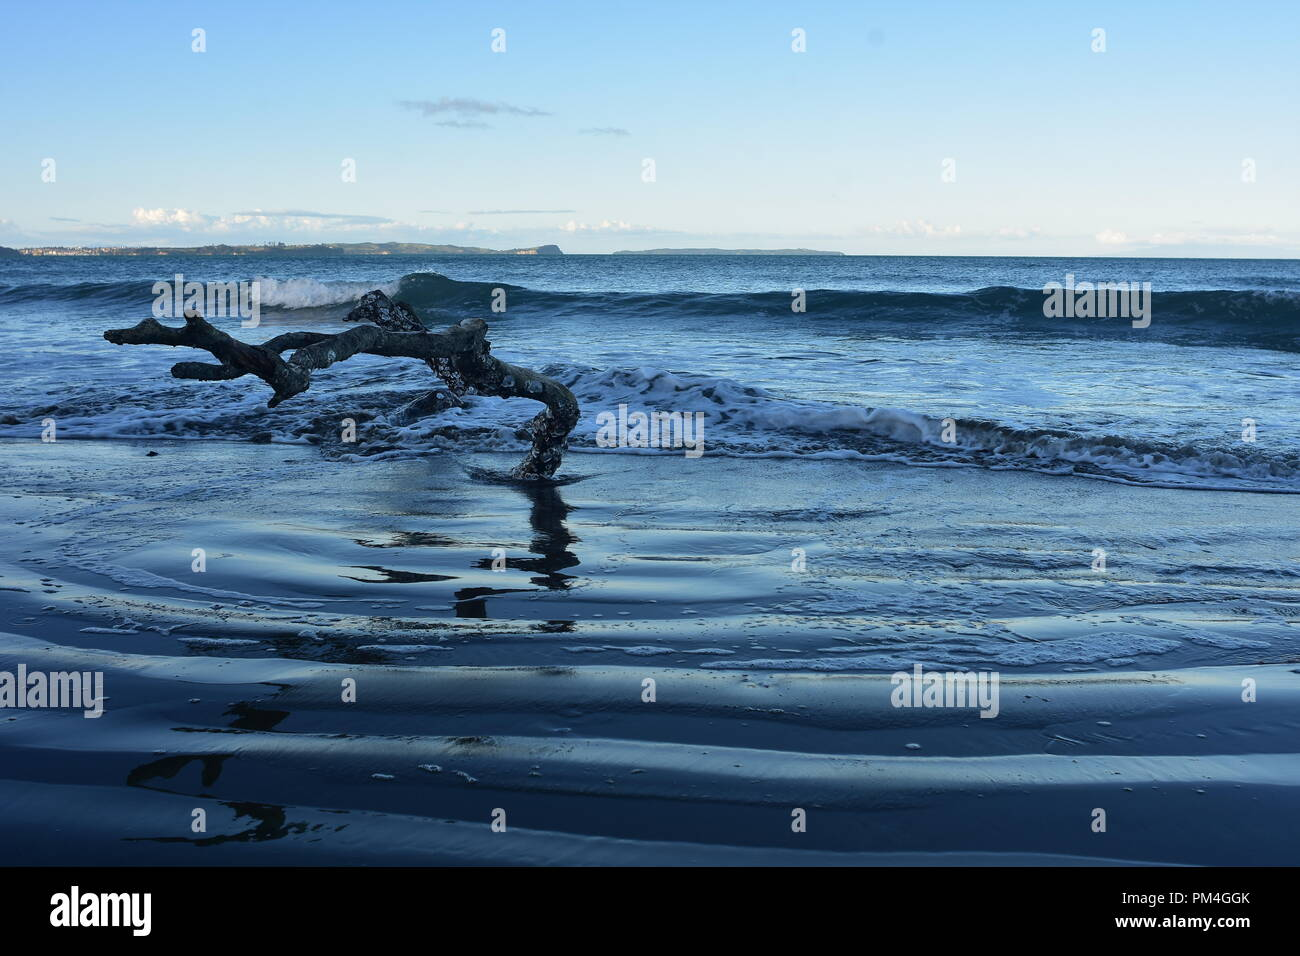 Piece of driftwood on sandy oceanic beach washed by surf with layer of white foam on water surface. - Stock Image